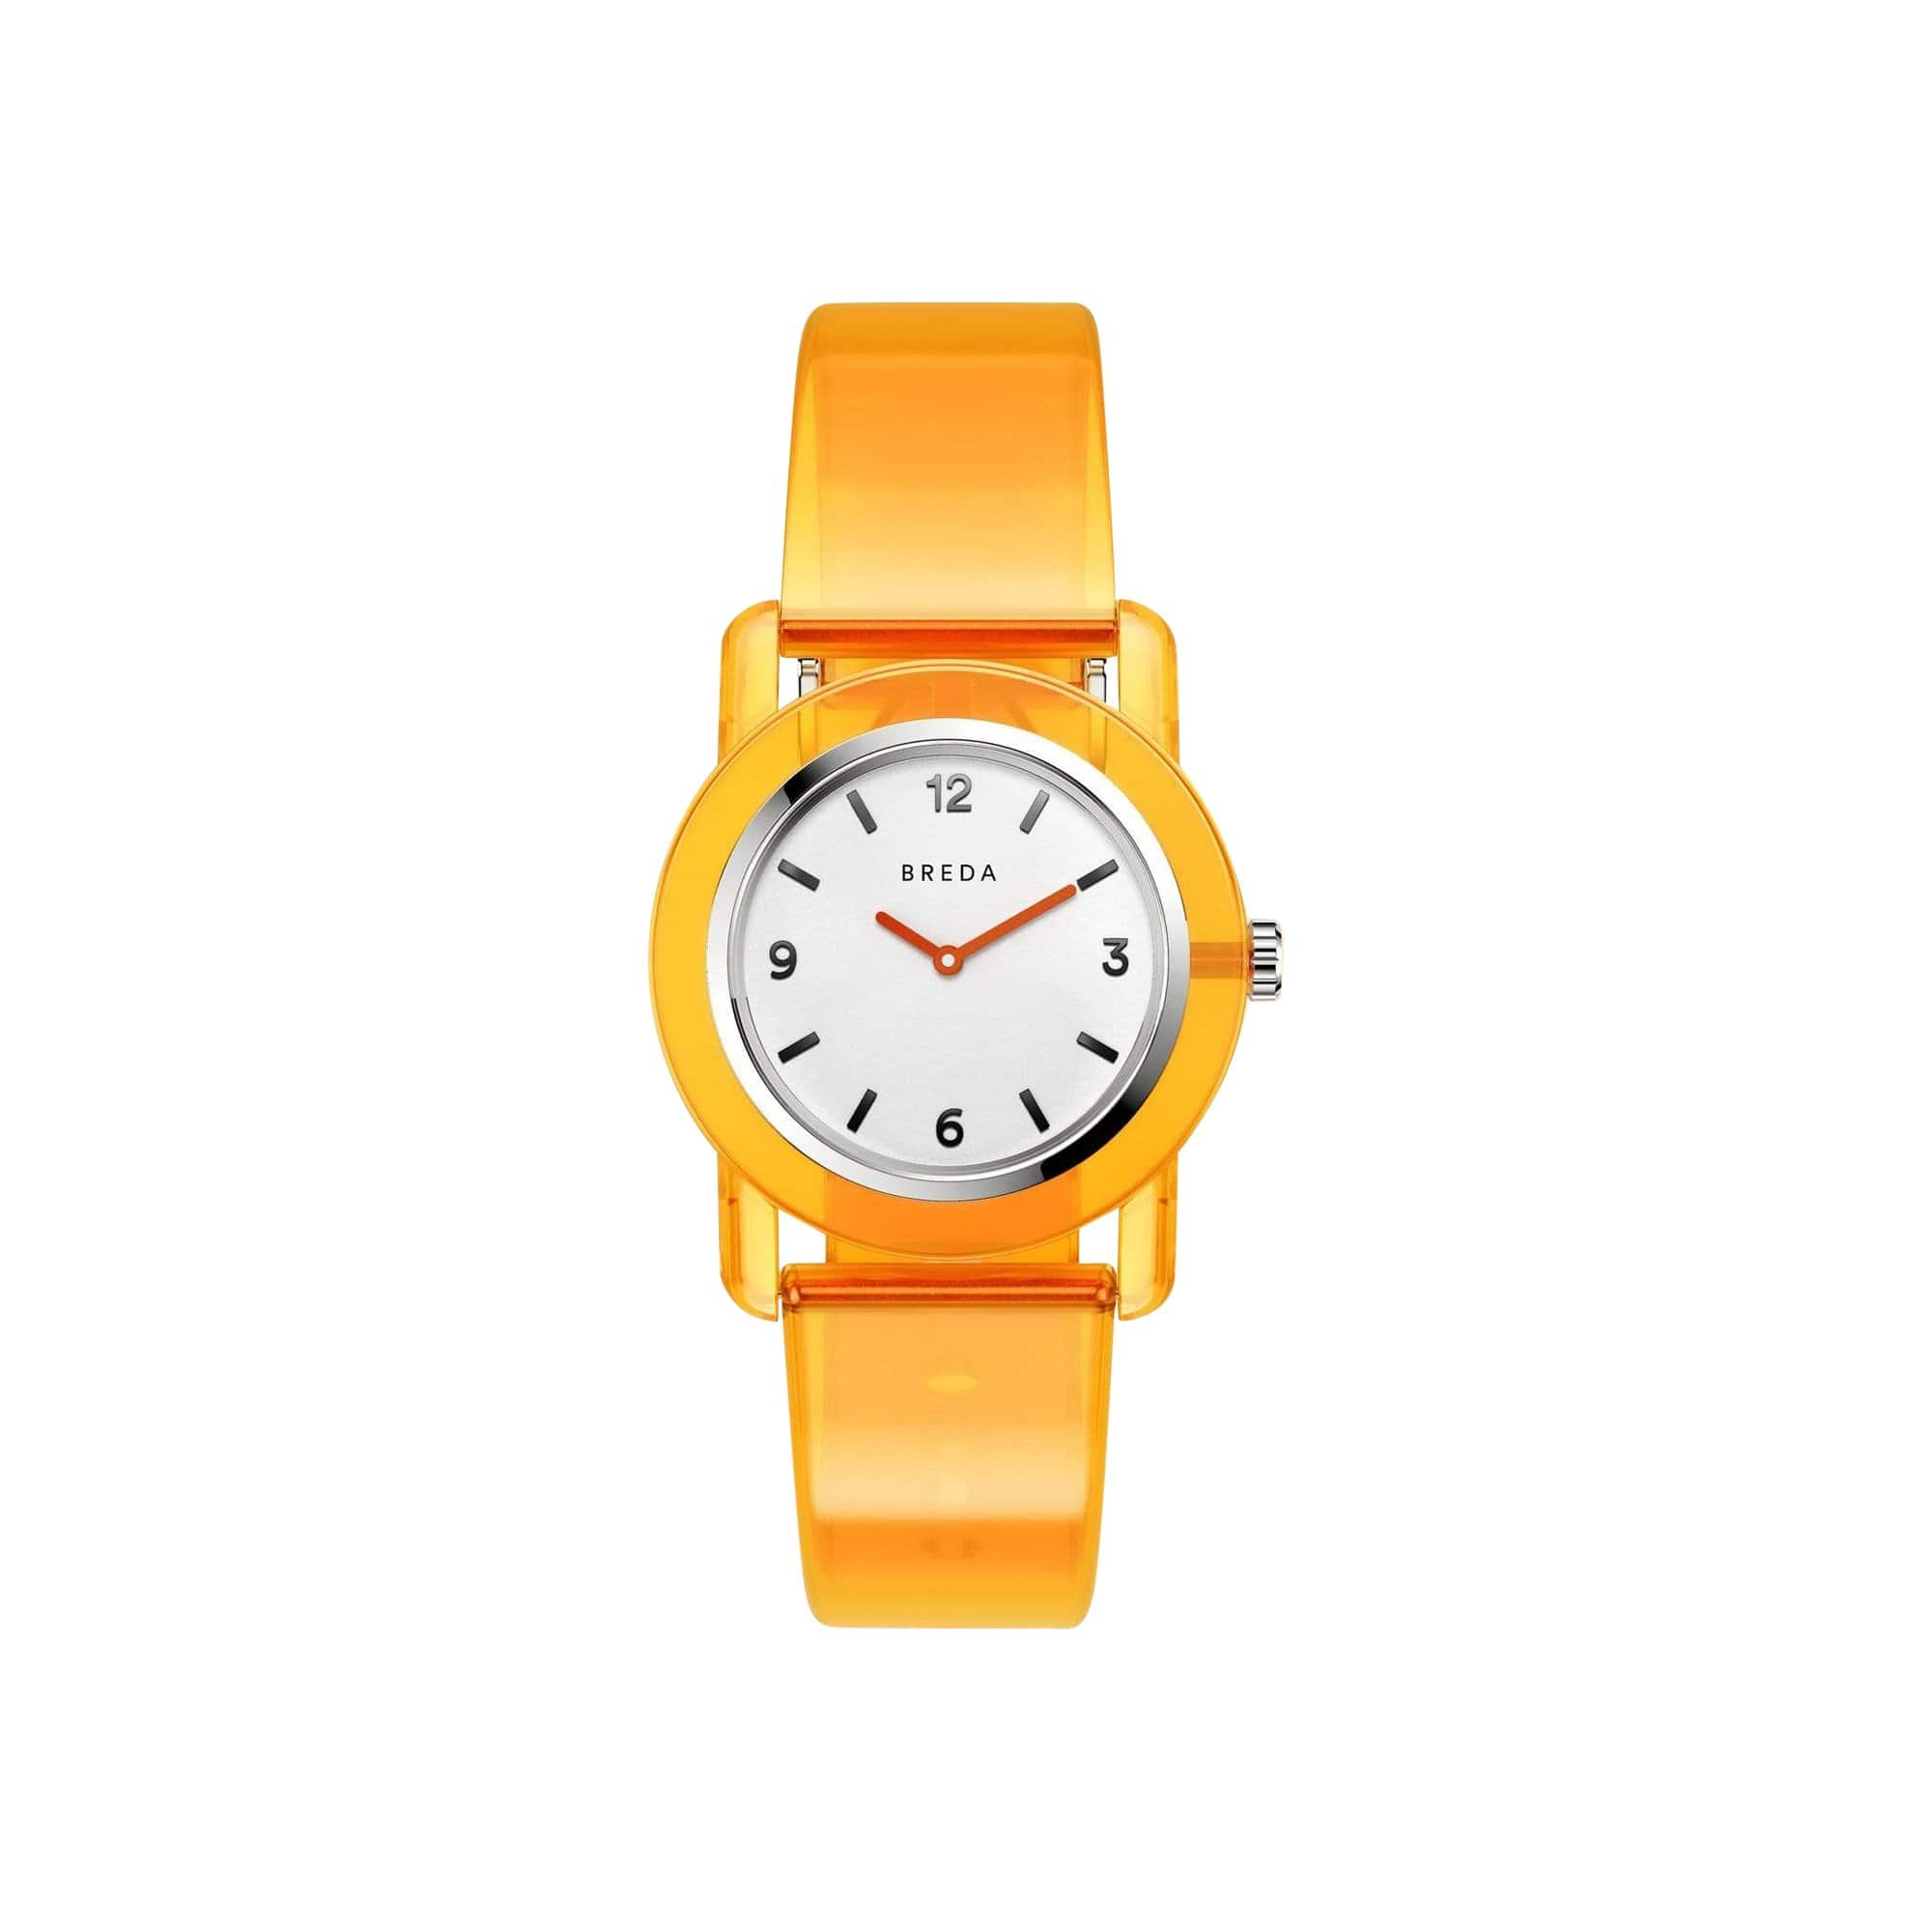 Tangerine Play Recycled Plastic Watch